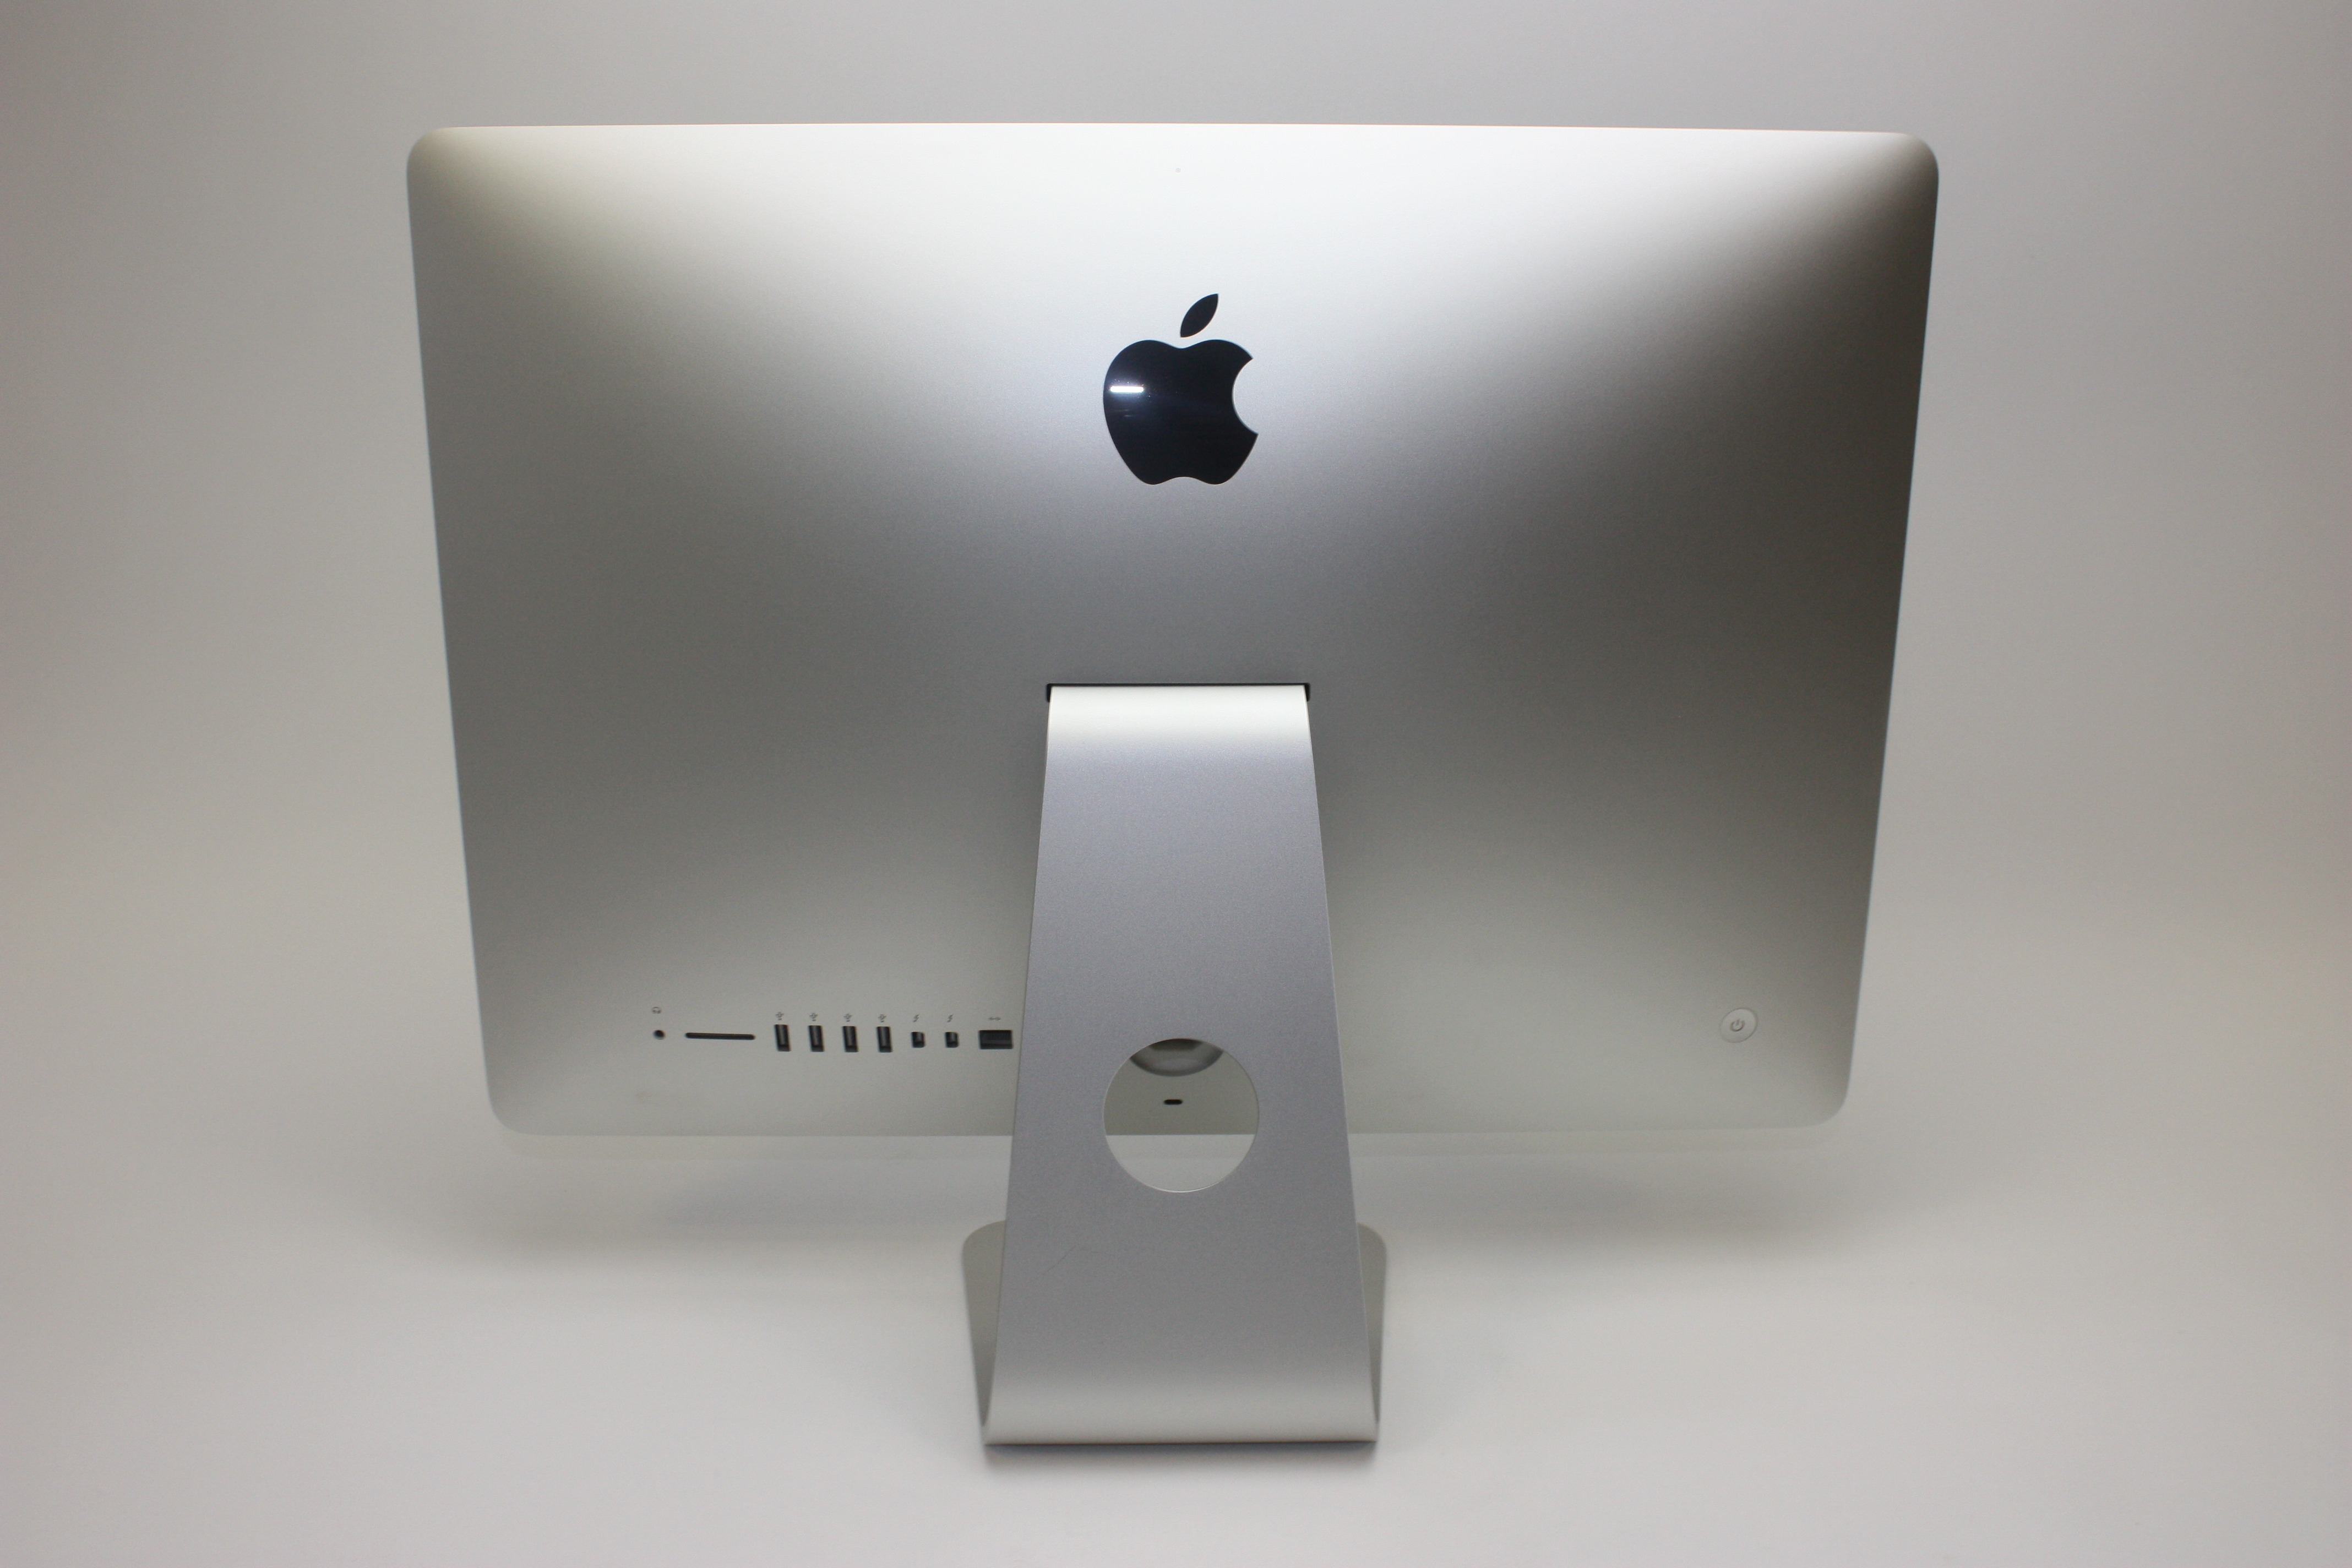 iMac (21.5-inch Late 2015), 1.6 GHz Intel Core i5, 8 GB 1867 MHz DDR3, 1 TB SATA Disk, Product age: 31 months, image 4